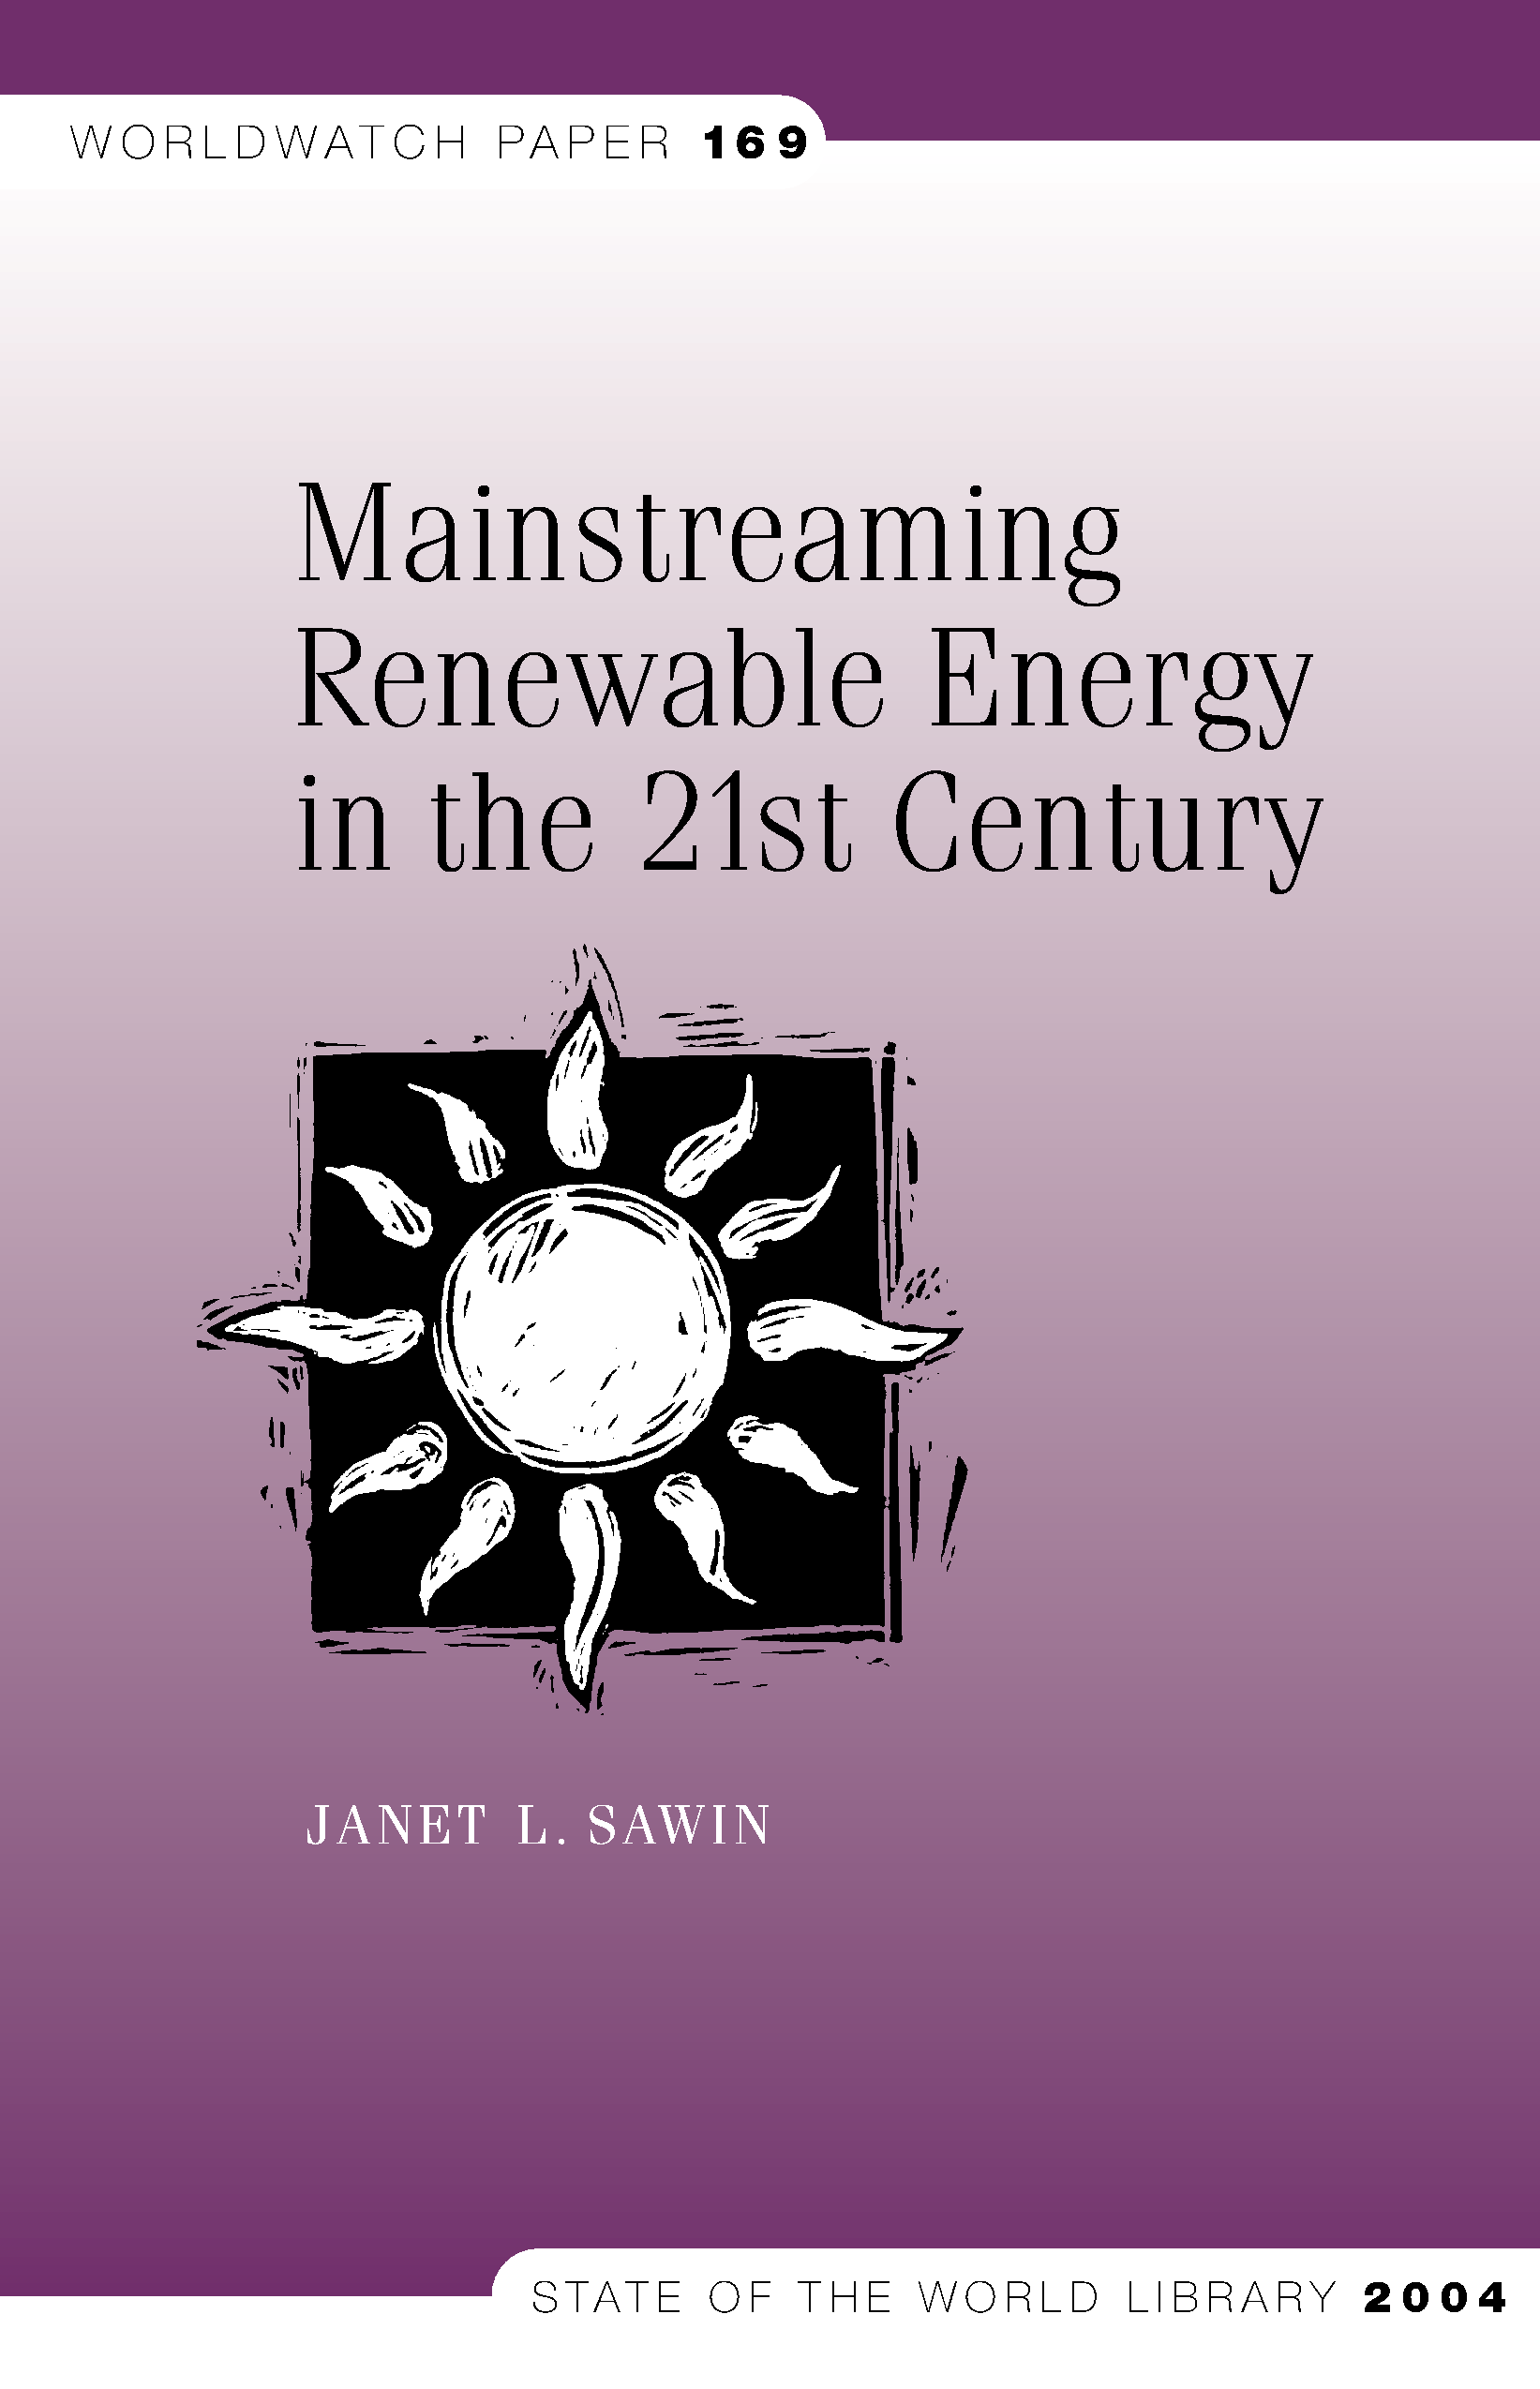 Mainstreaming Renewable Energy in the 21st Century